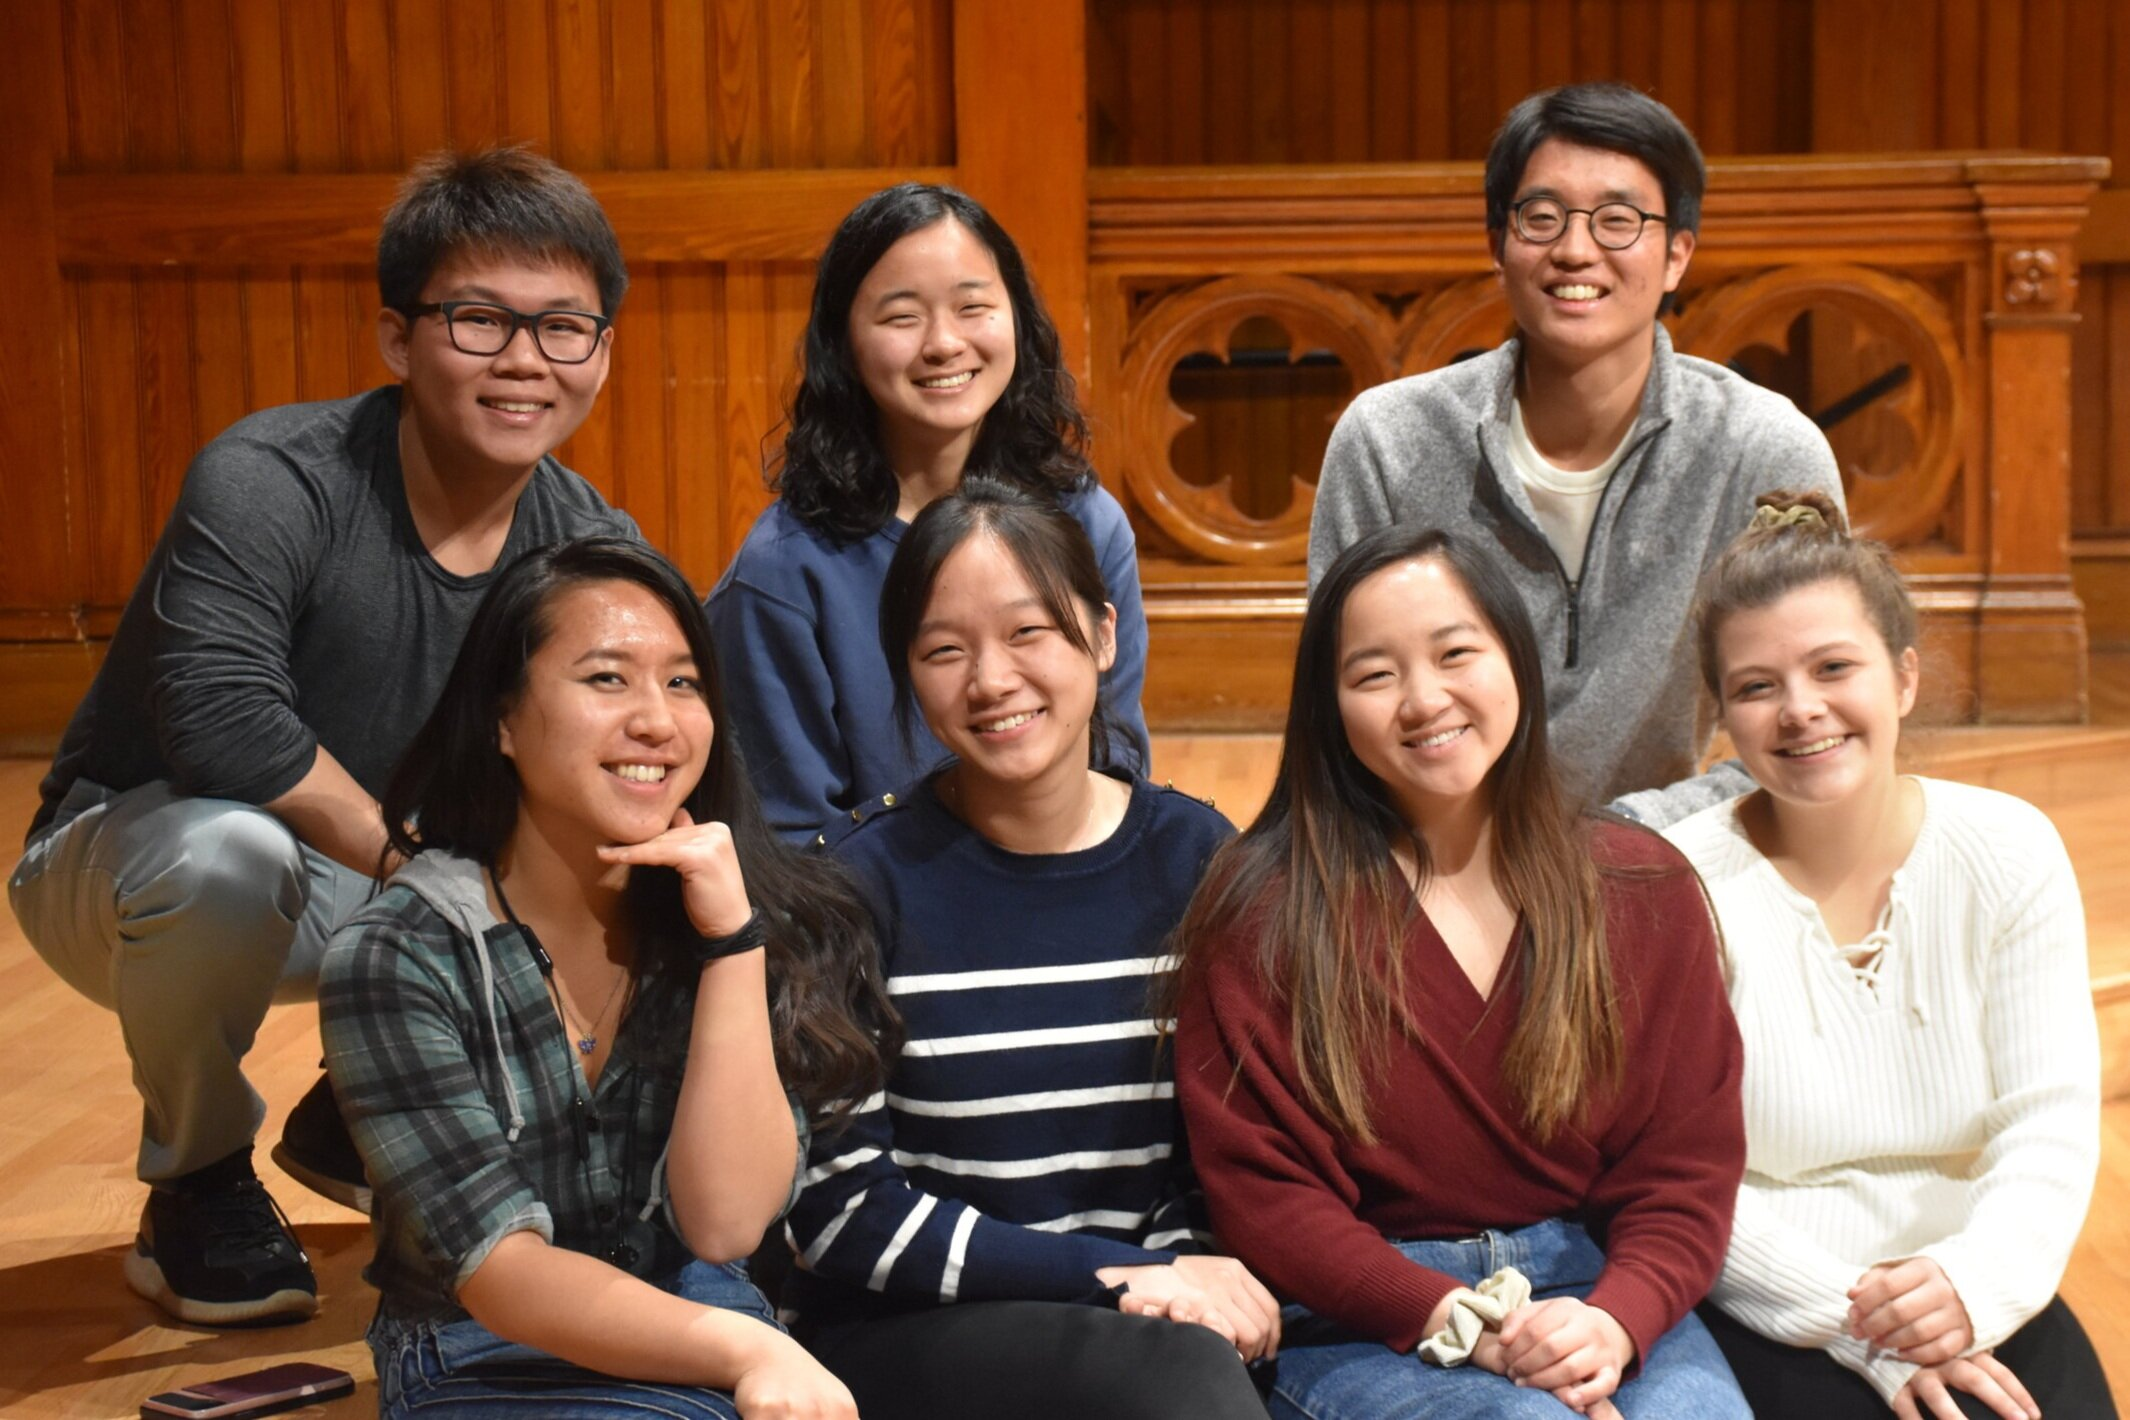 (From left to right) Front Row: Jenny Wang, Claire Tseng, Odessa Deng, Amelia Cossentino. Second Row: Austin Kwoun, Anna Gong, Patrick Song. Photo Credits: Topher Colby